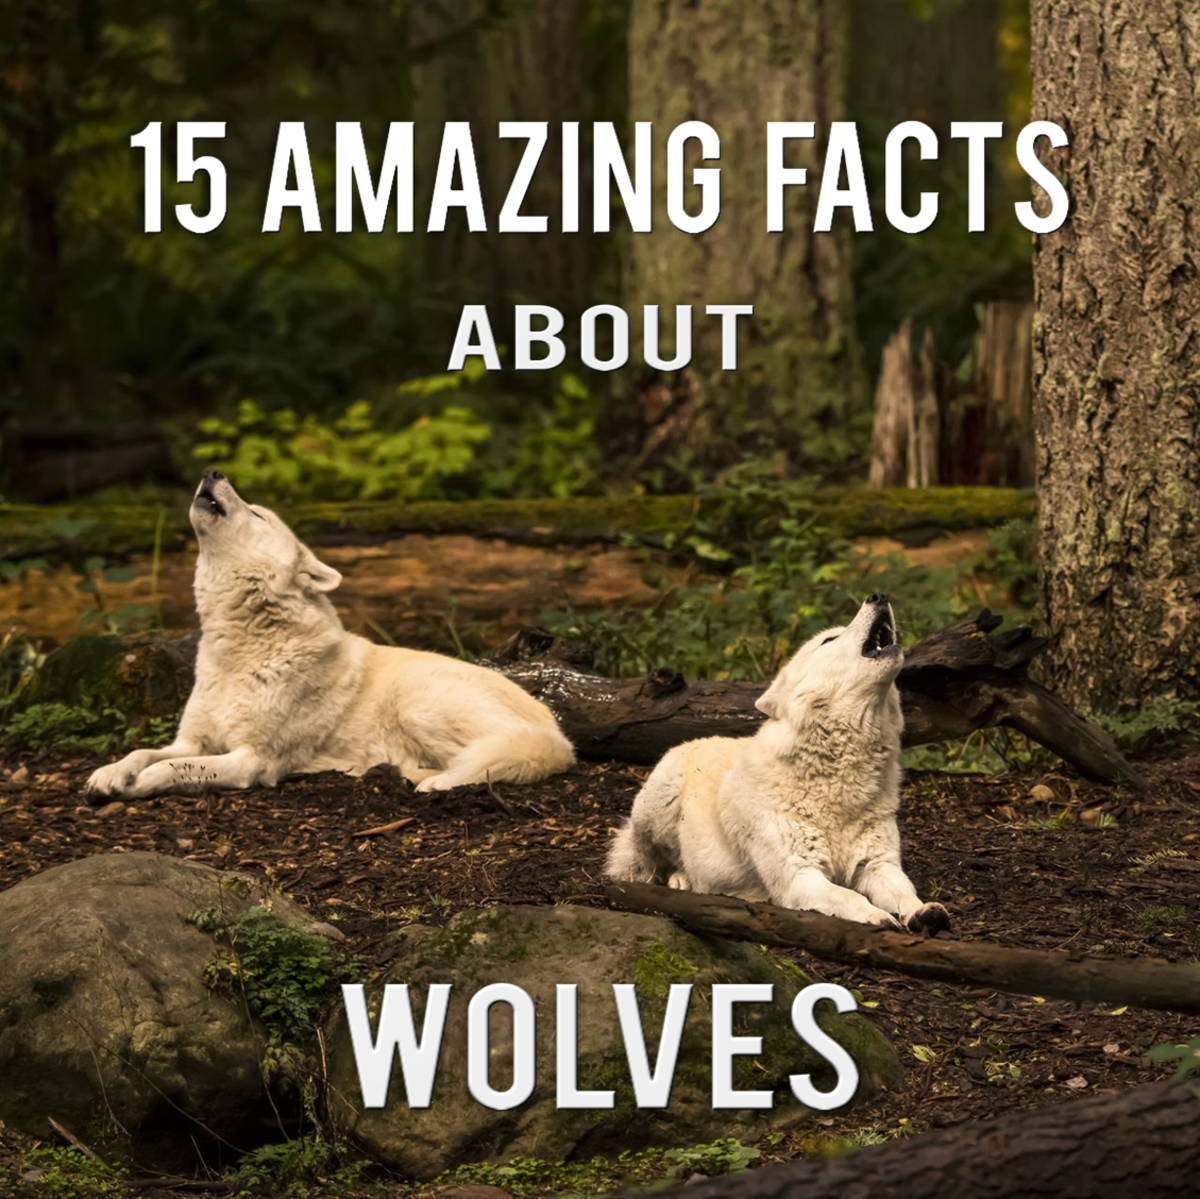 Amazing Facts about Wolves